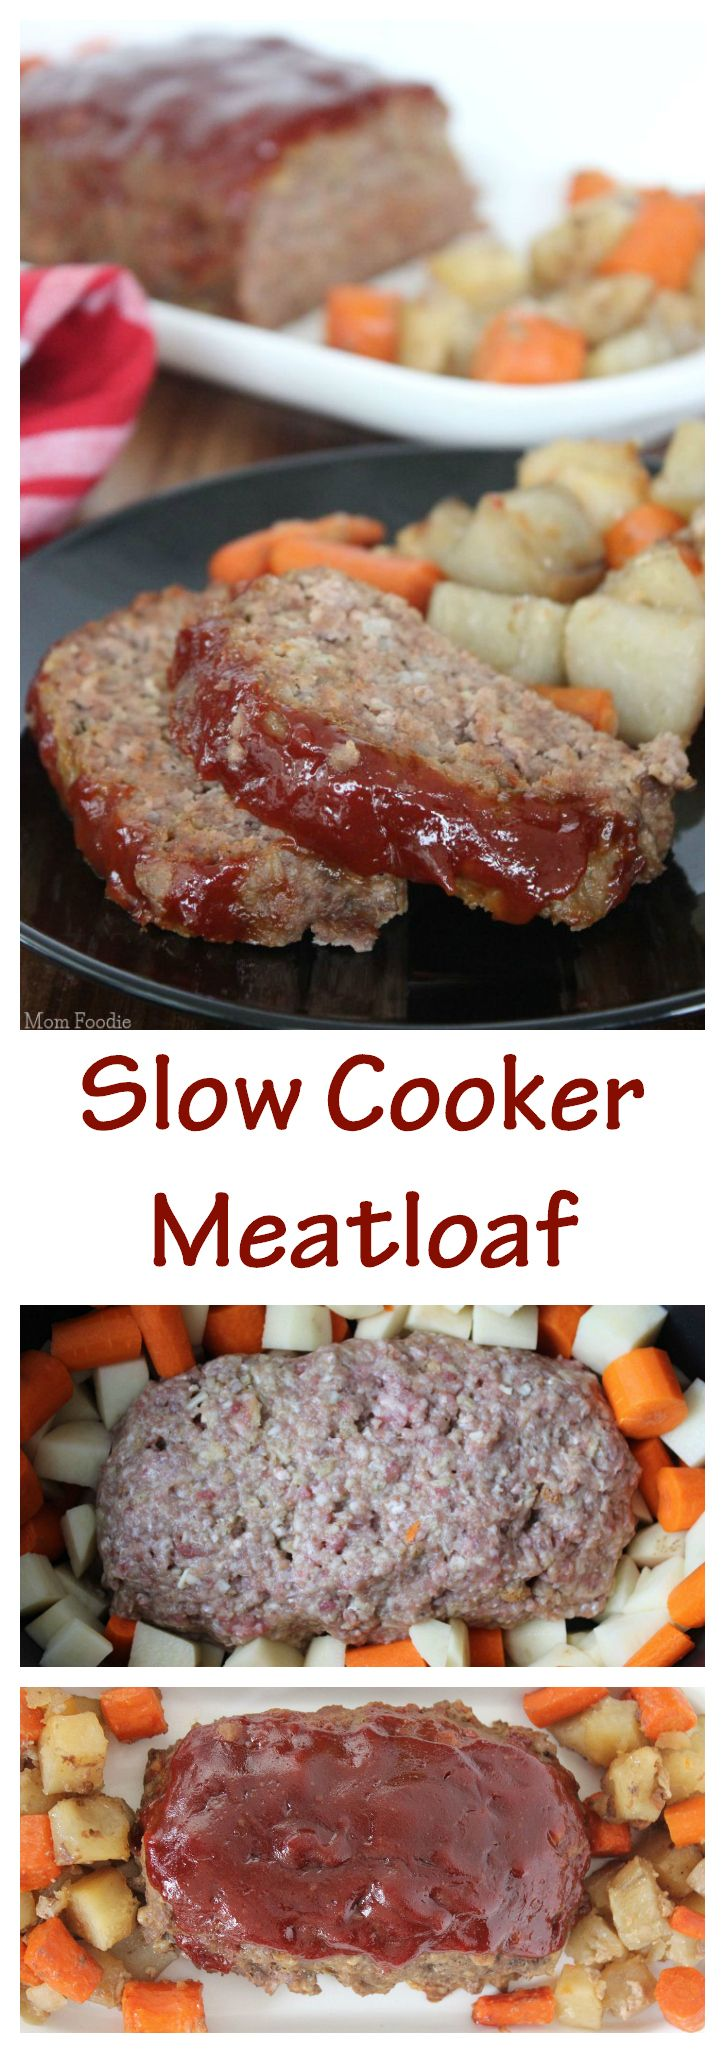 Easy Slow Cooker Meatloaf with Potatoes & Carrots... your family will love it.